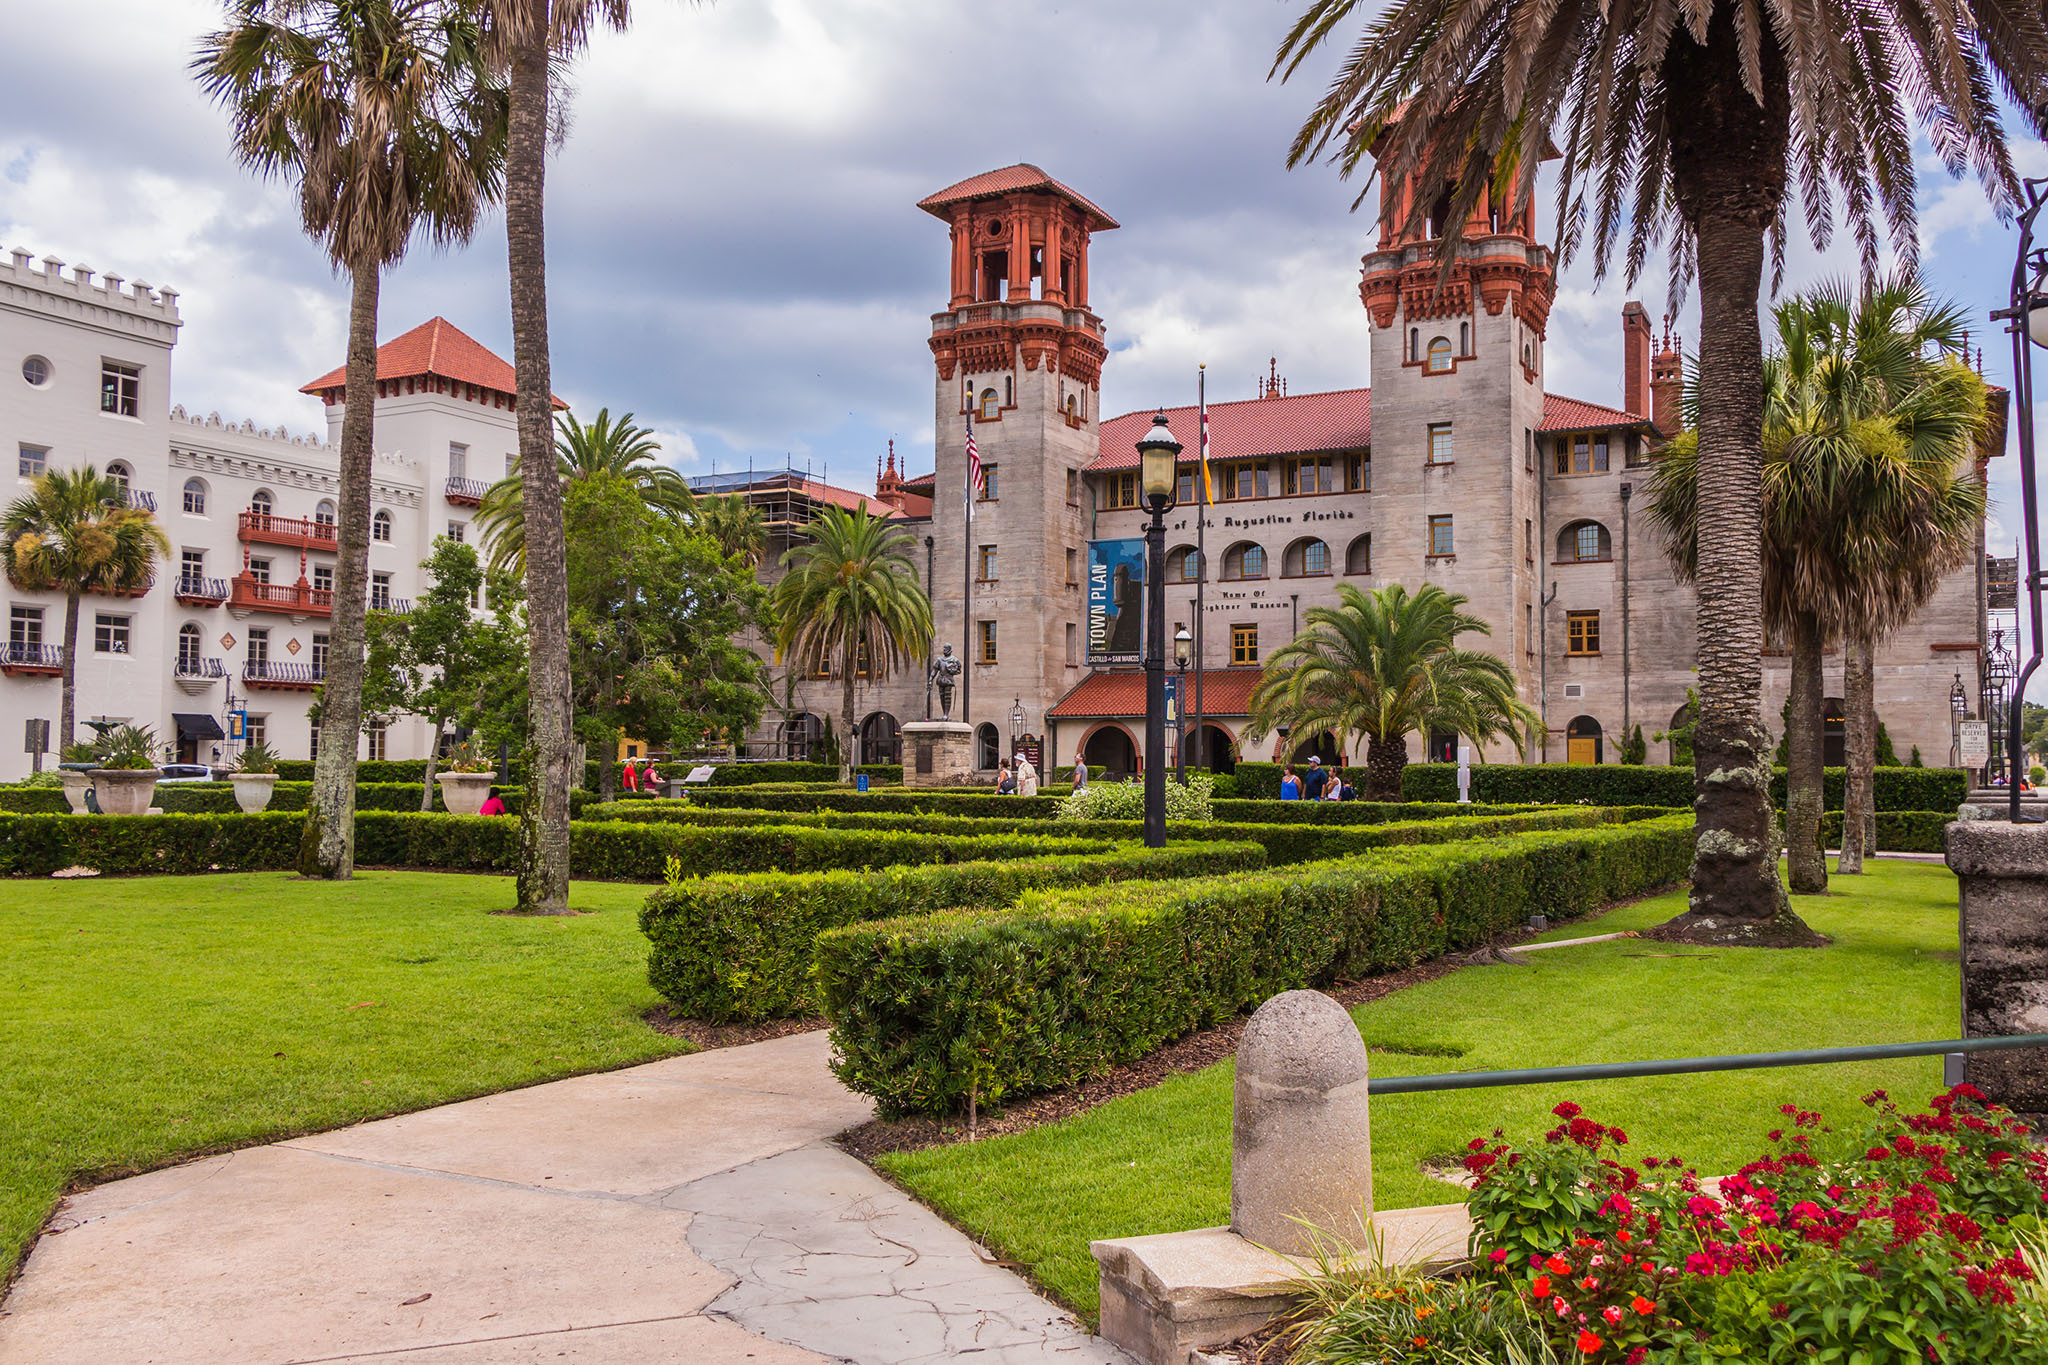 The Lightner Museum, eitw